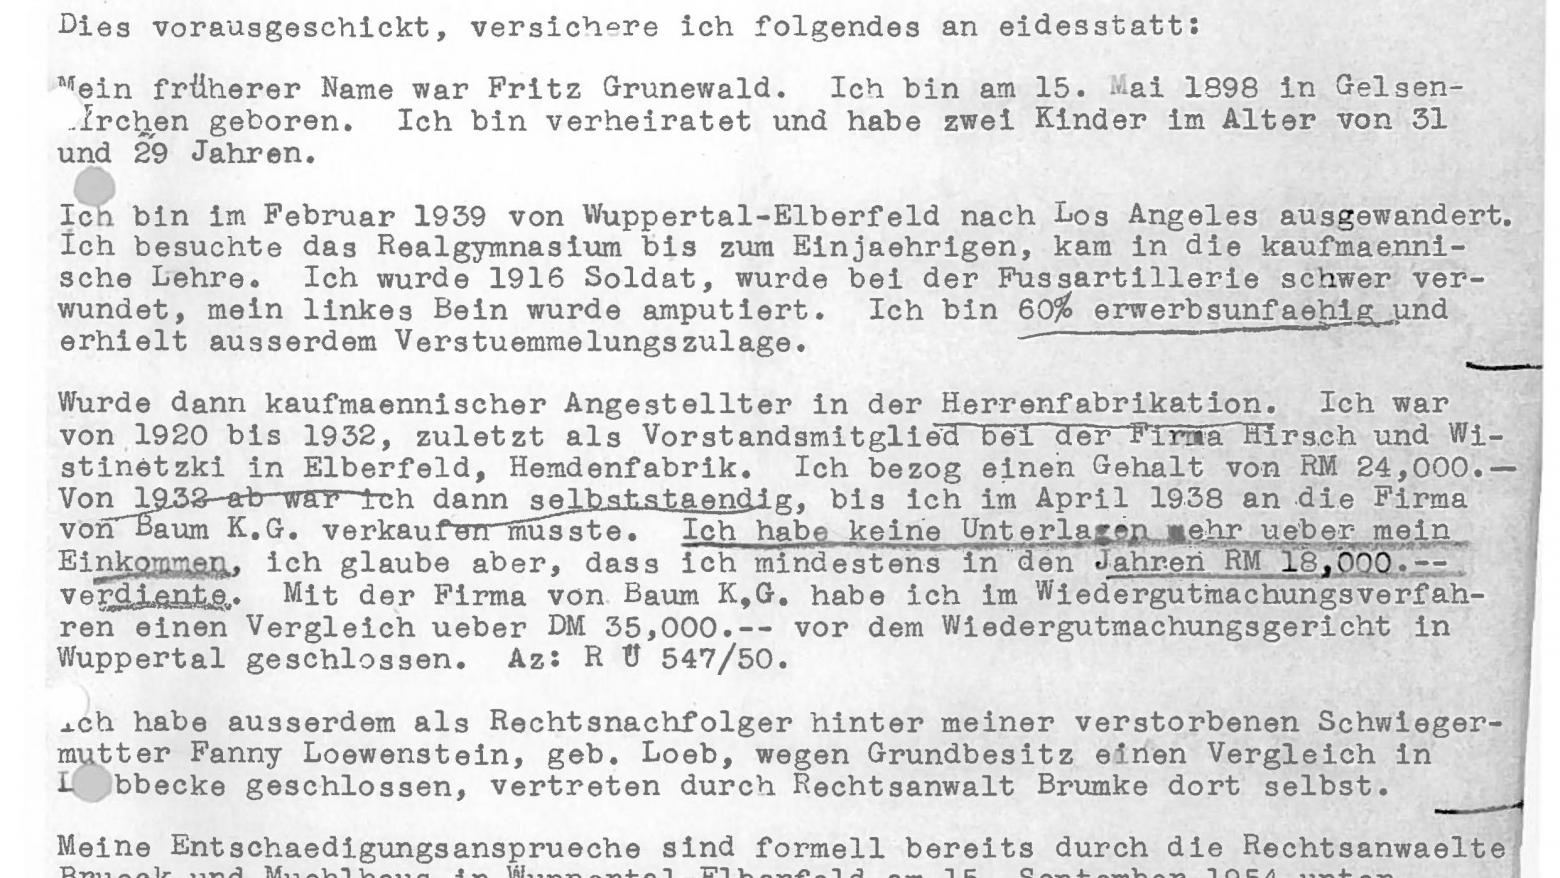 Affidavit signed by Fred Grunwald in connection with his compensation claims, November 14, 1955. Bezirksregierung Düsseldorf, Dezernat 15